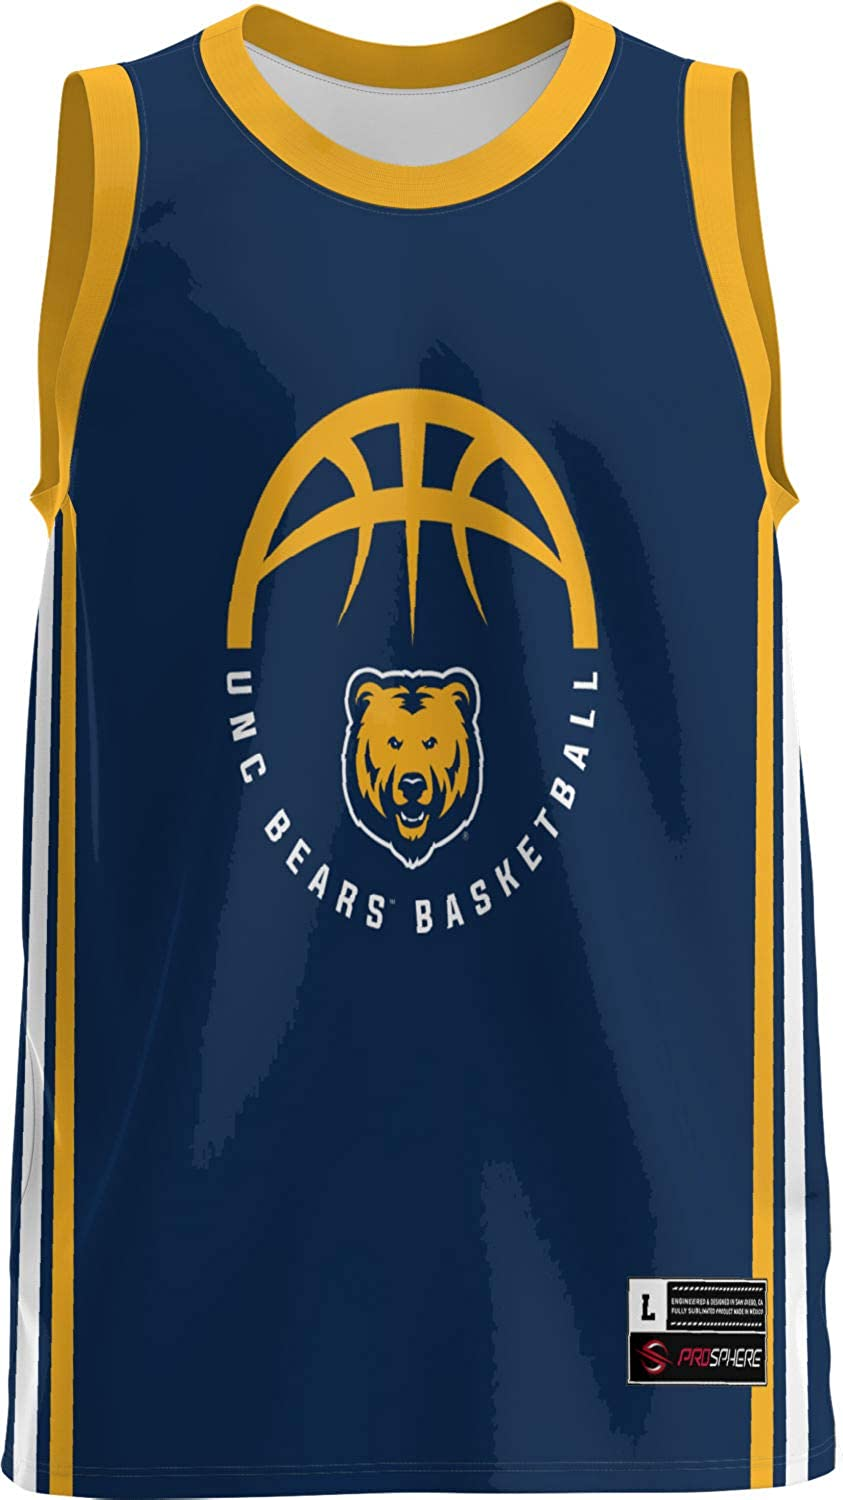 University of Northern Colorado Basketball Jers Limited time Limited time sale trial price Men's